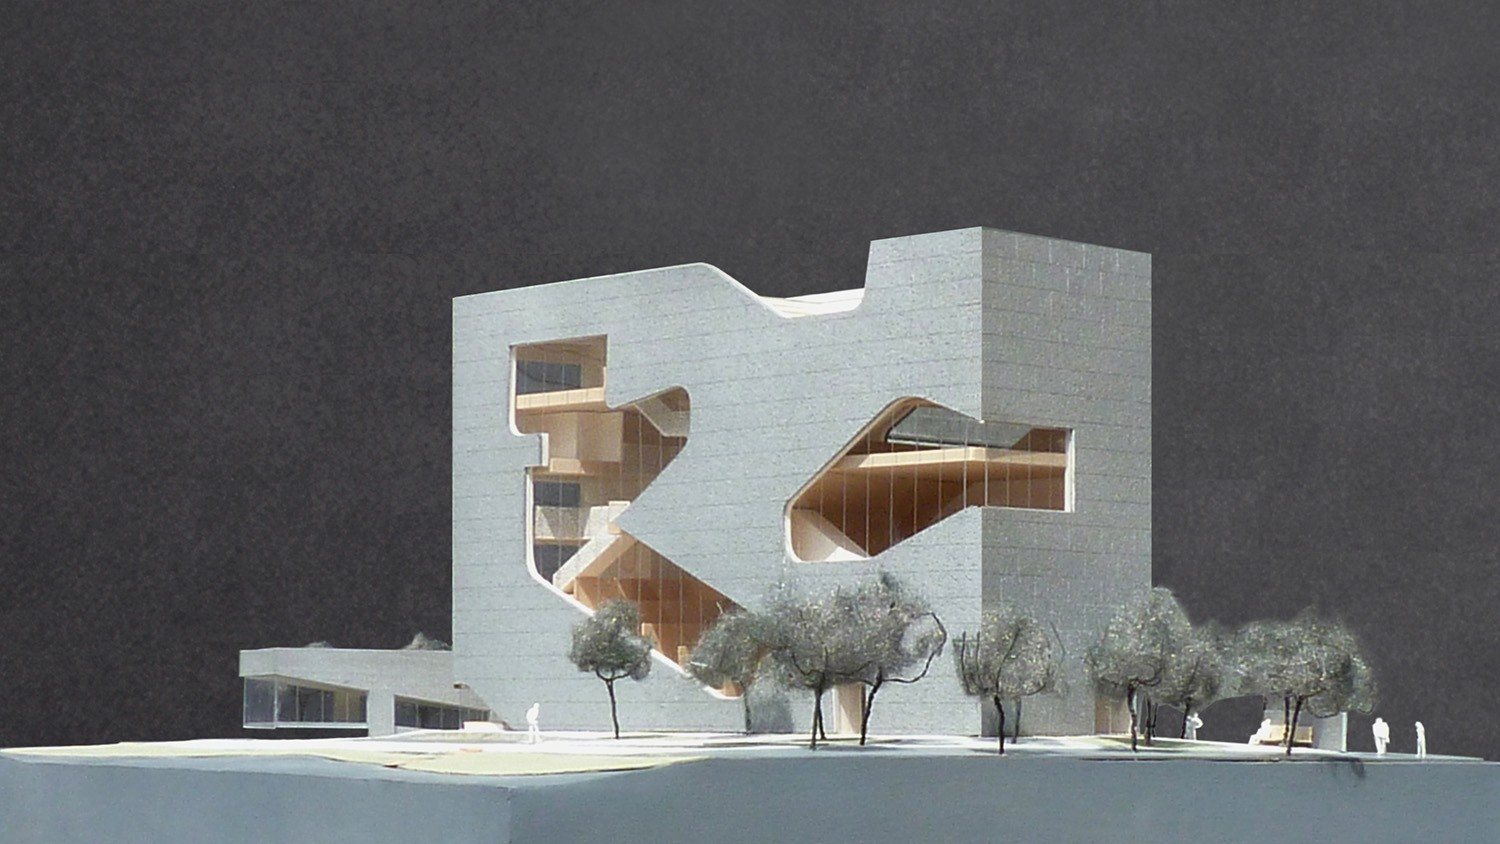 https://stevenholl.sfo2.digitaloceanspaces.com/uploads/projects/project-images/StevenHollArchitects_HPL_Southwest Elevation v2edit_1_WH.jpg